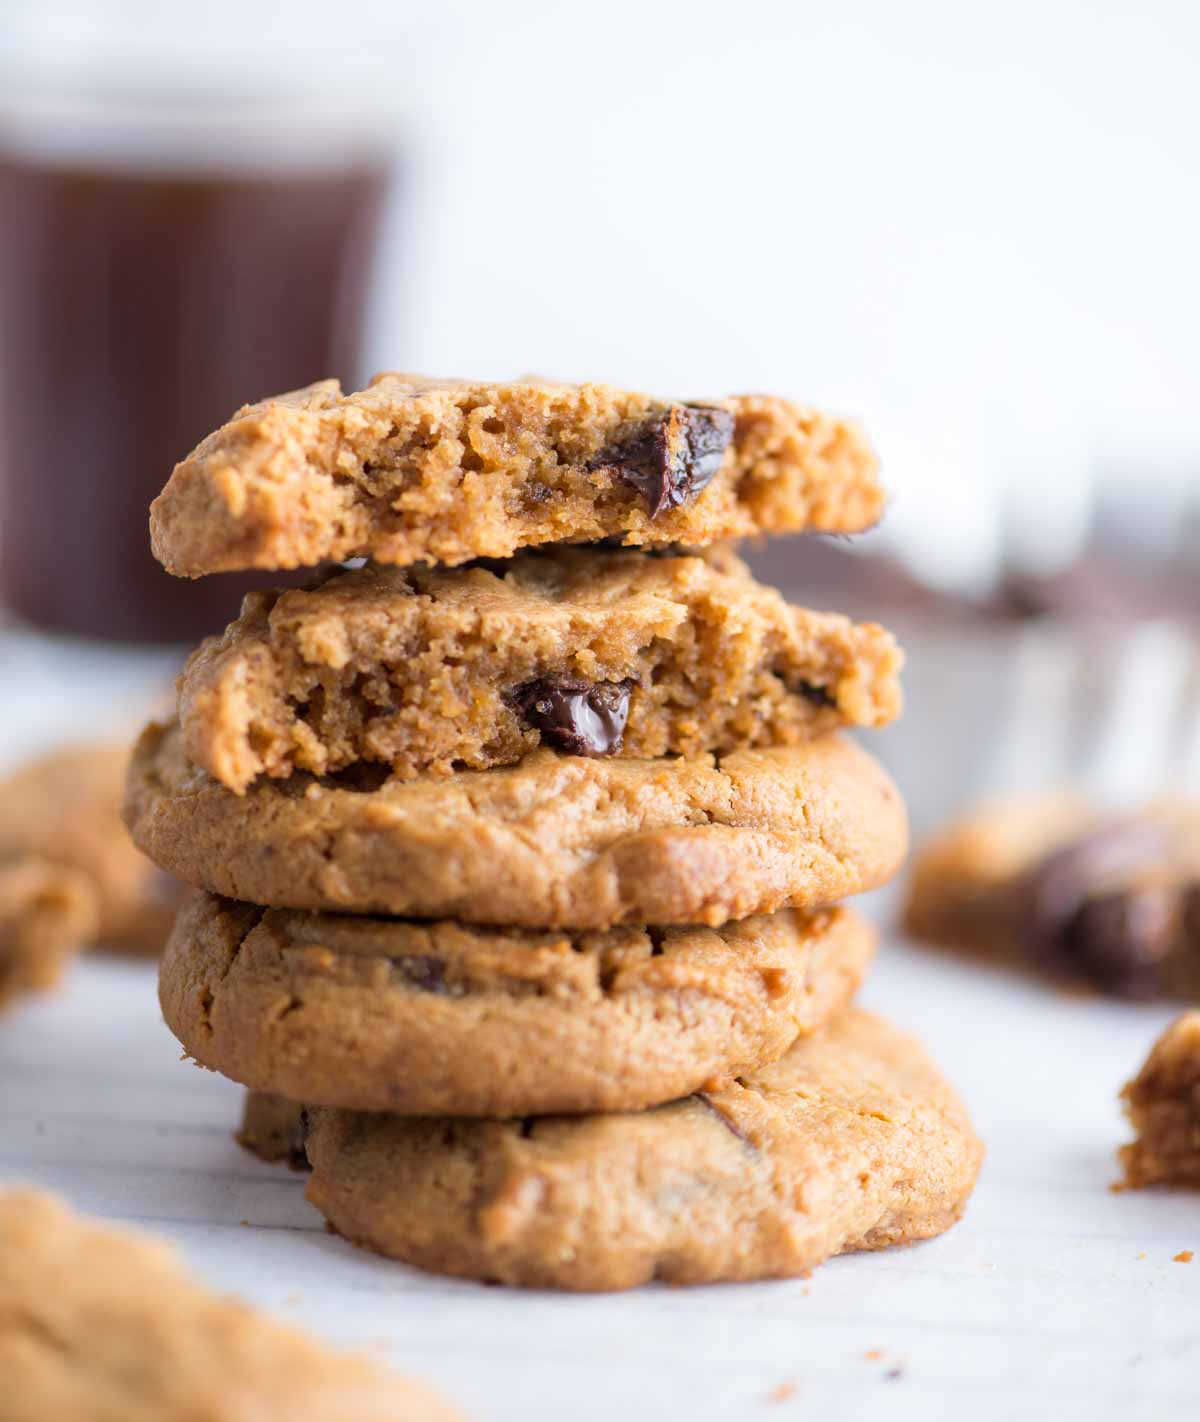 These flourless Peanut butter cookies are soft, chewy are easy to make. No flour, no dairy, also gluten-free, these cookies are packed with Peanut butter flavor.